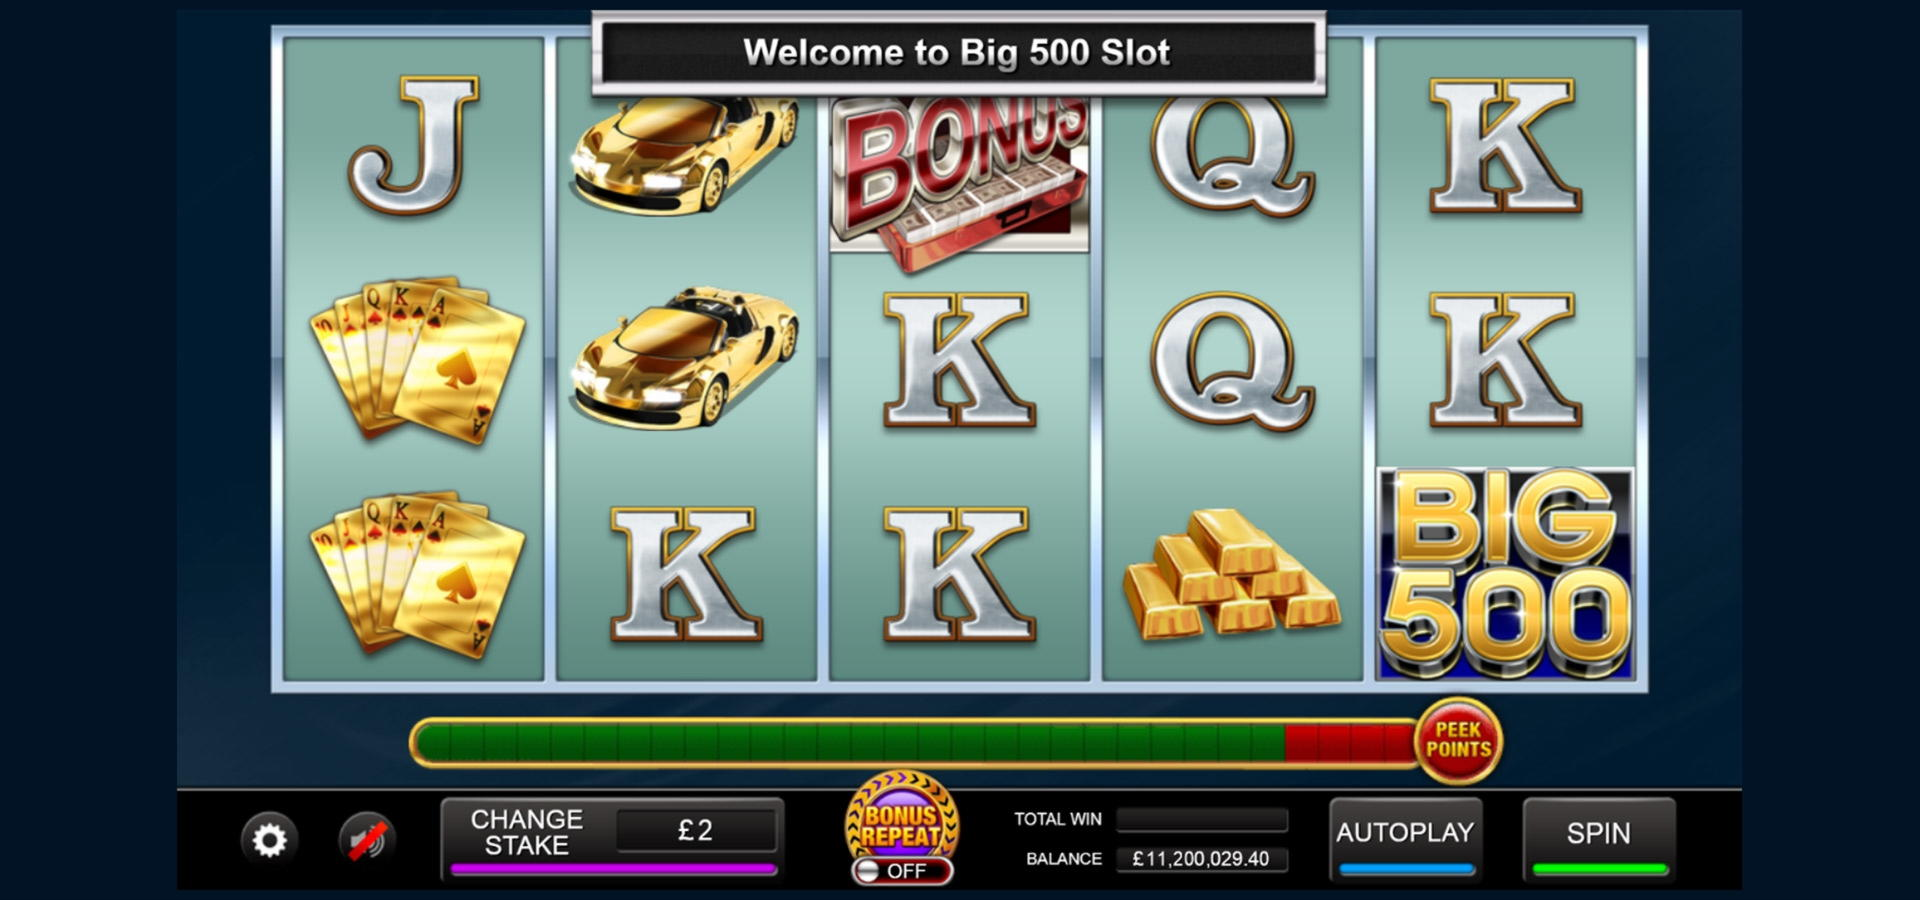 €170 FREE CASINO CHIP at Sloto'Cash